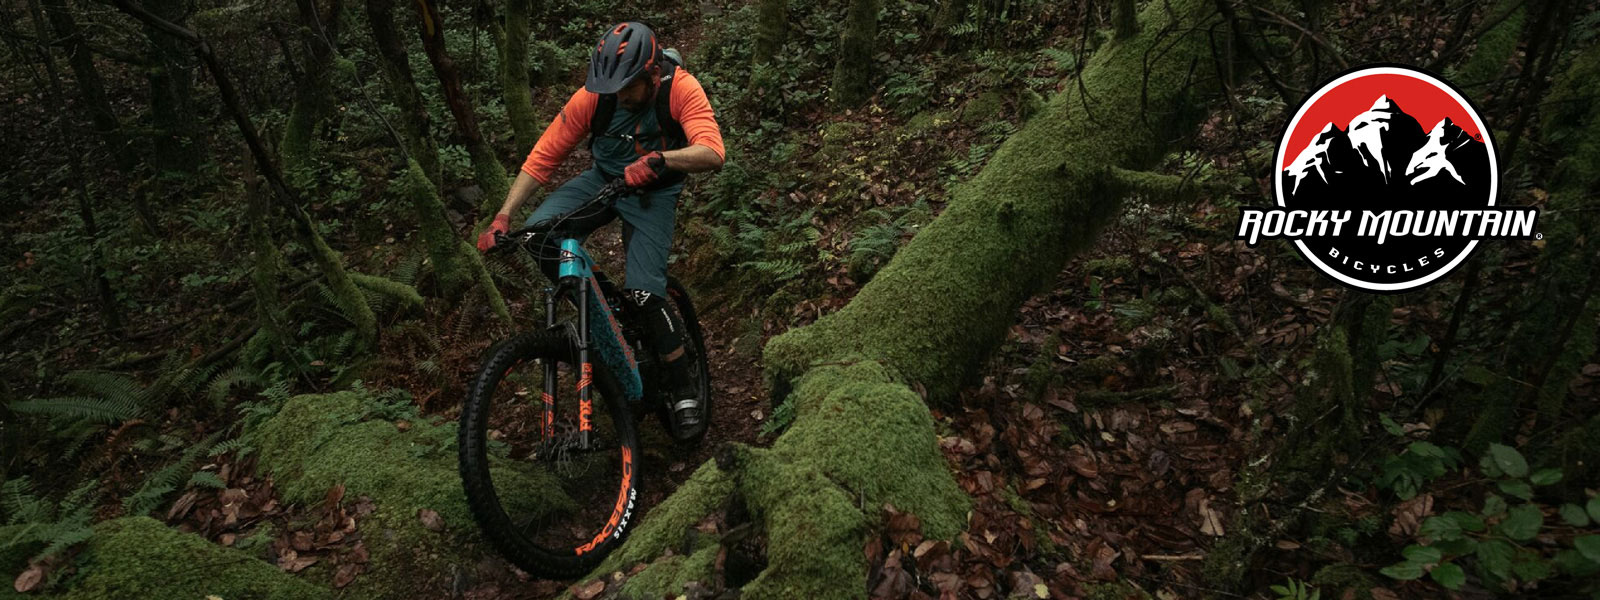 Rocky Mountain Bicycles - Slayer - Designed to lay waste to the world's roughest trails, the slayer is back as an all-carbon enduro and all mountain weapon